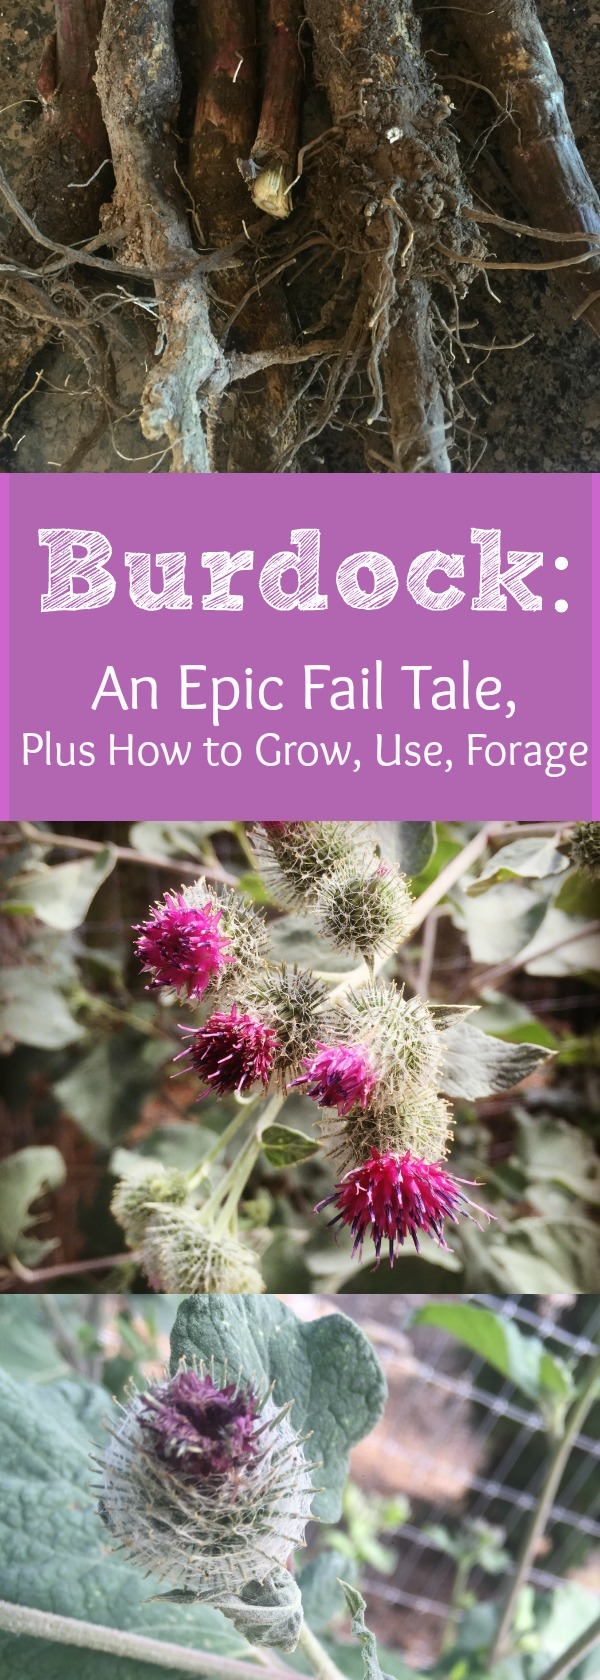 Flowering Burdock---Yep, it's too late for those roots now, as I sadly found out! Find out how to grow, use, and forage for Burdock!